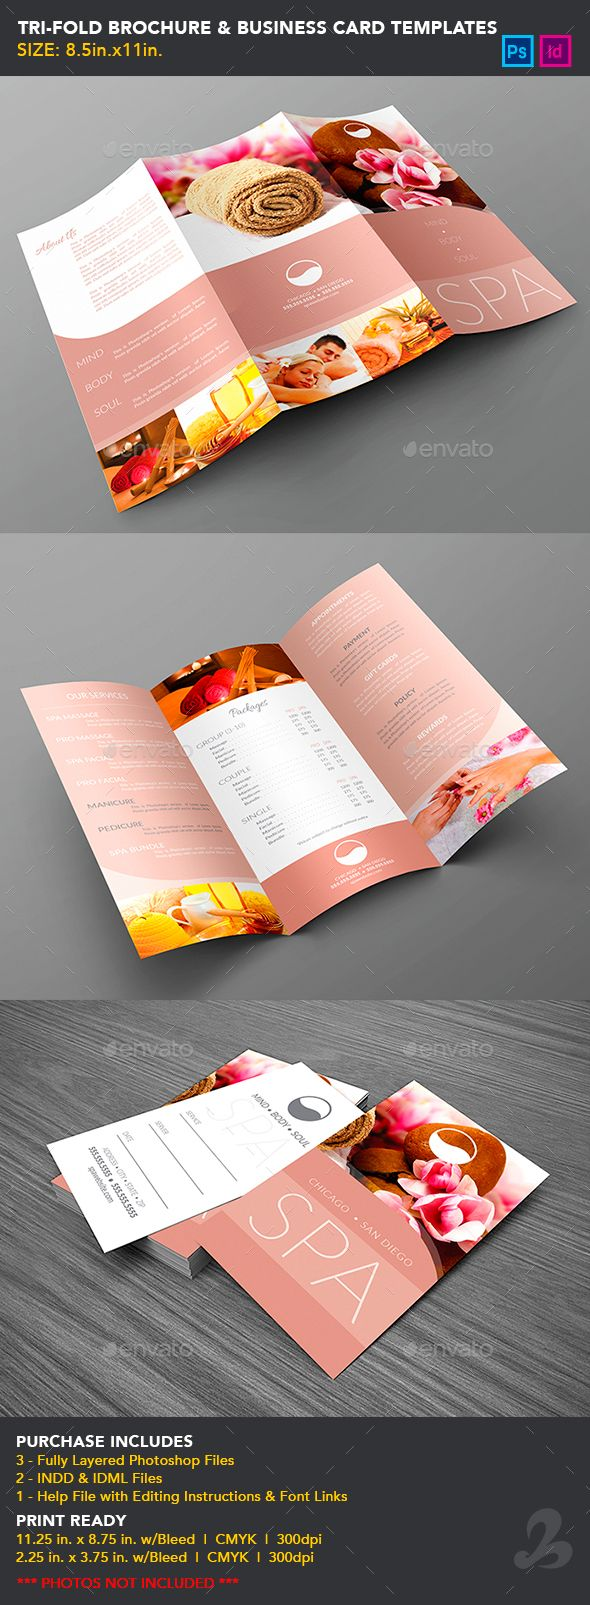 Best spa tri fold brochure business card templates only best spa tri fold brochure business card templates only available here wajeb